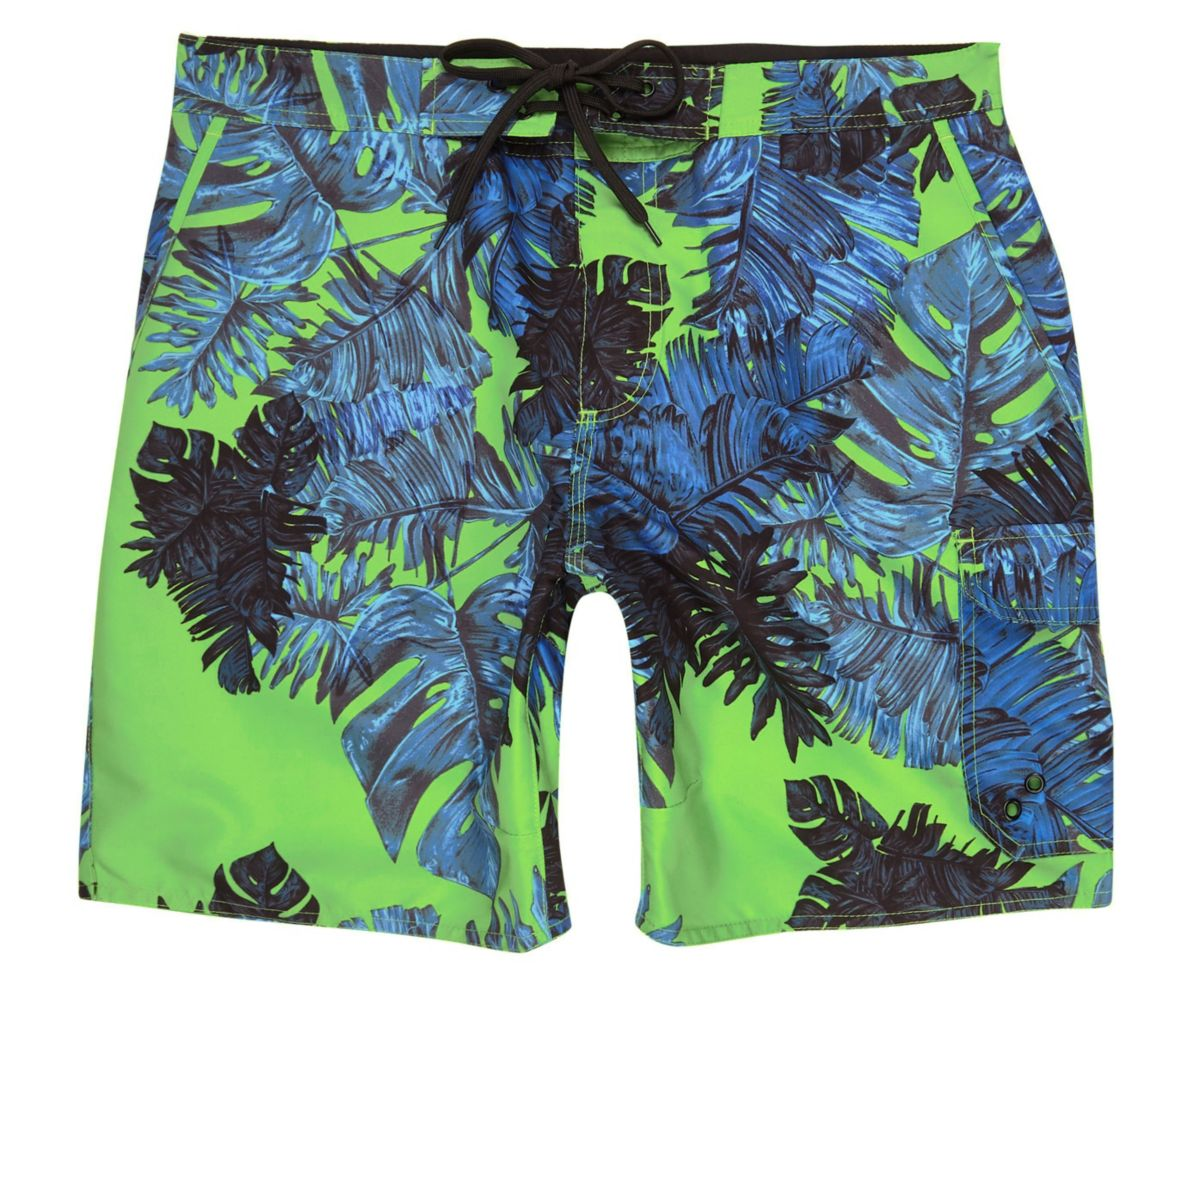 Green palm print swim shorts